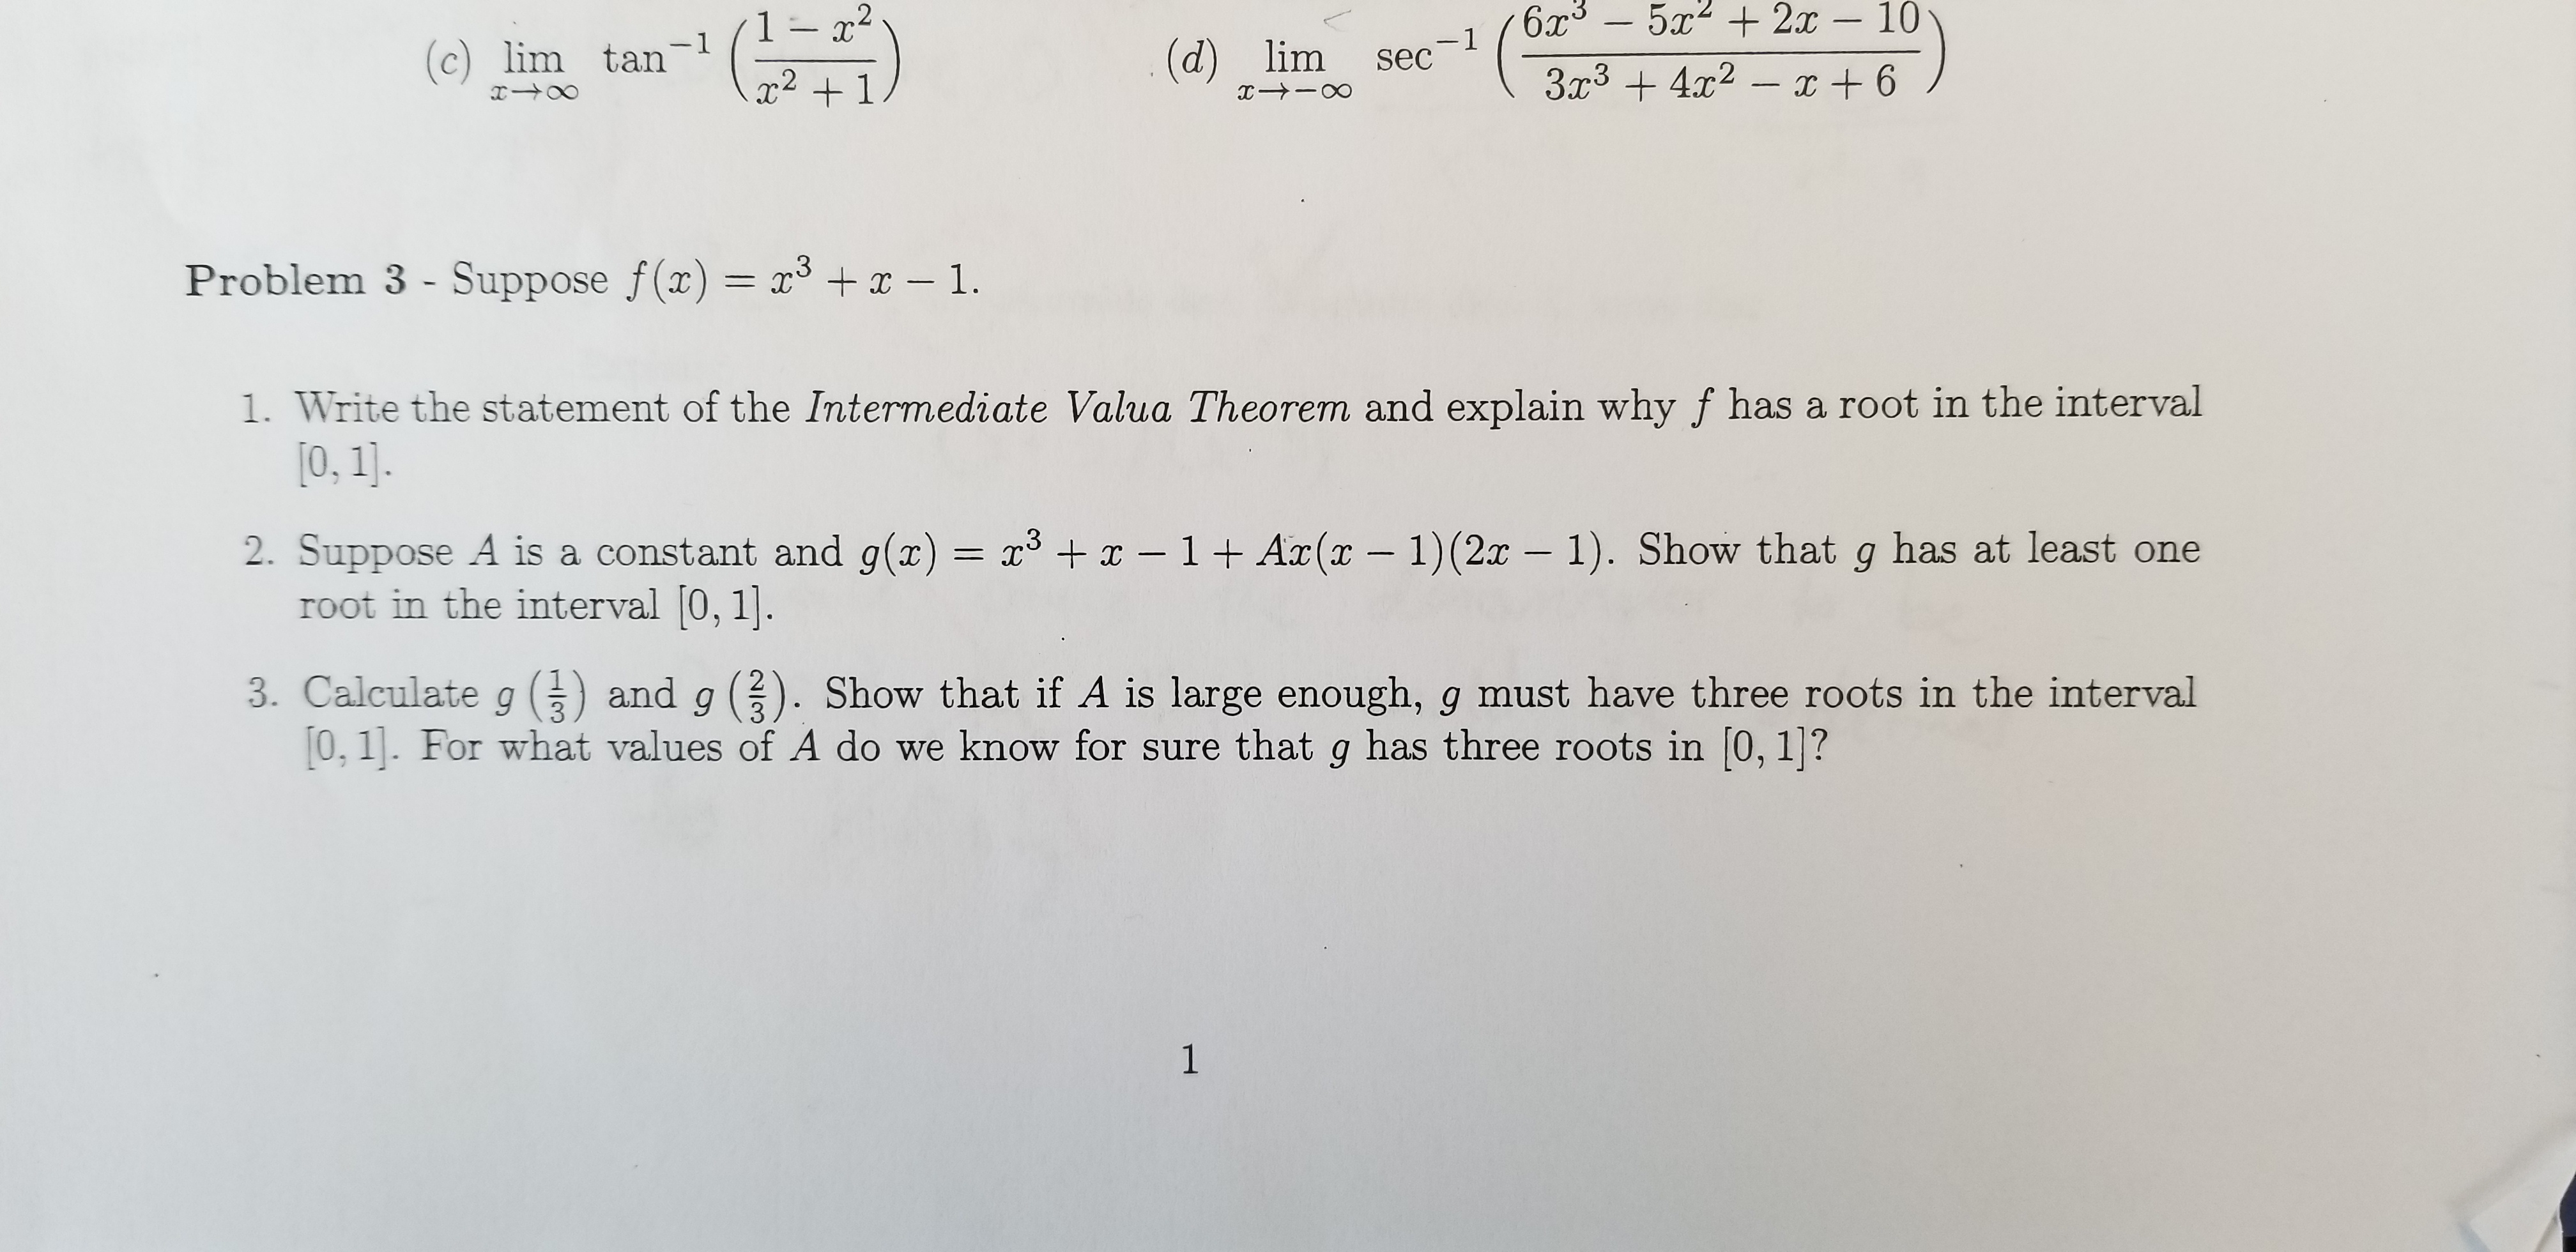 6x3-5 2x - 10 3r342 6 1- 2 -1 sec -1 (c) lim tan (d) lim 2 Problem 3 - Suppose f(x) = x x -1. 3 1. Write the statement of the Intermediate Valua Theorem and explain why f has a root in the interval 0, 1]. 2. Suppose A is a constant and g(z) = x3 in the interval 0, 1]. x -1 + Ar(x - 1) (2x - 1). Show that g has at least one and g 3 3. Calculate g 0, 1. For what values of A do we know for sure that g has three roots in [0, 1|? Show that if A is large enough, g must have three roots in the interval C3 1